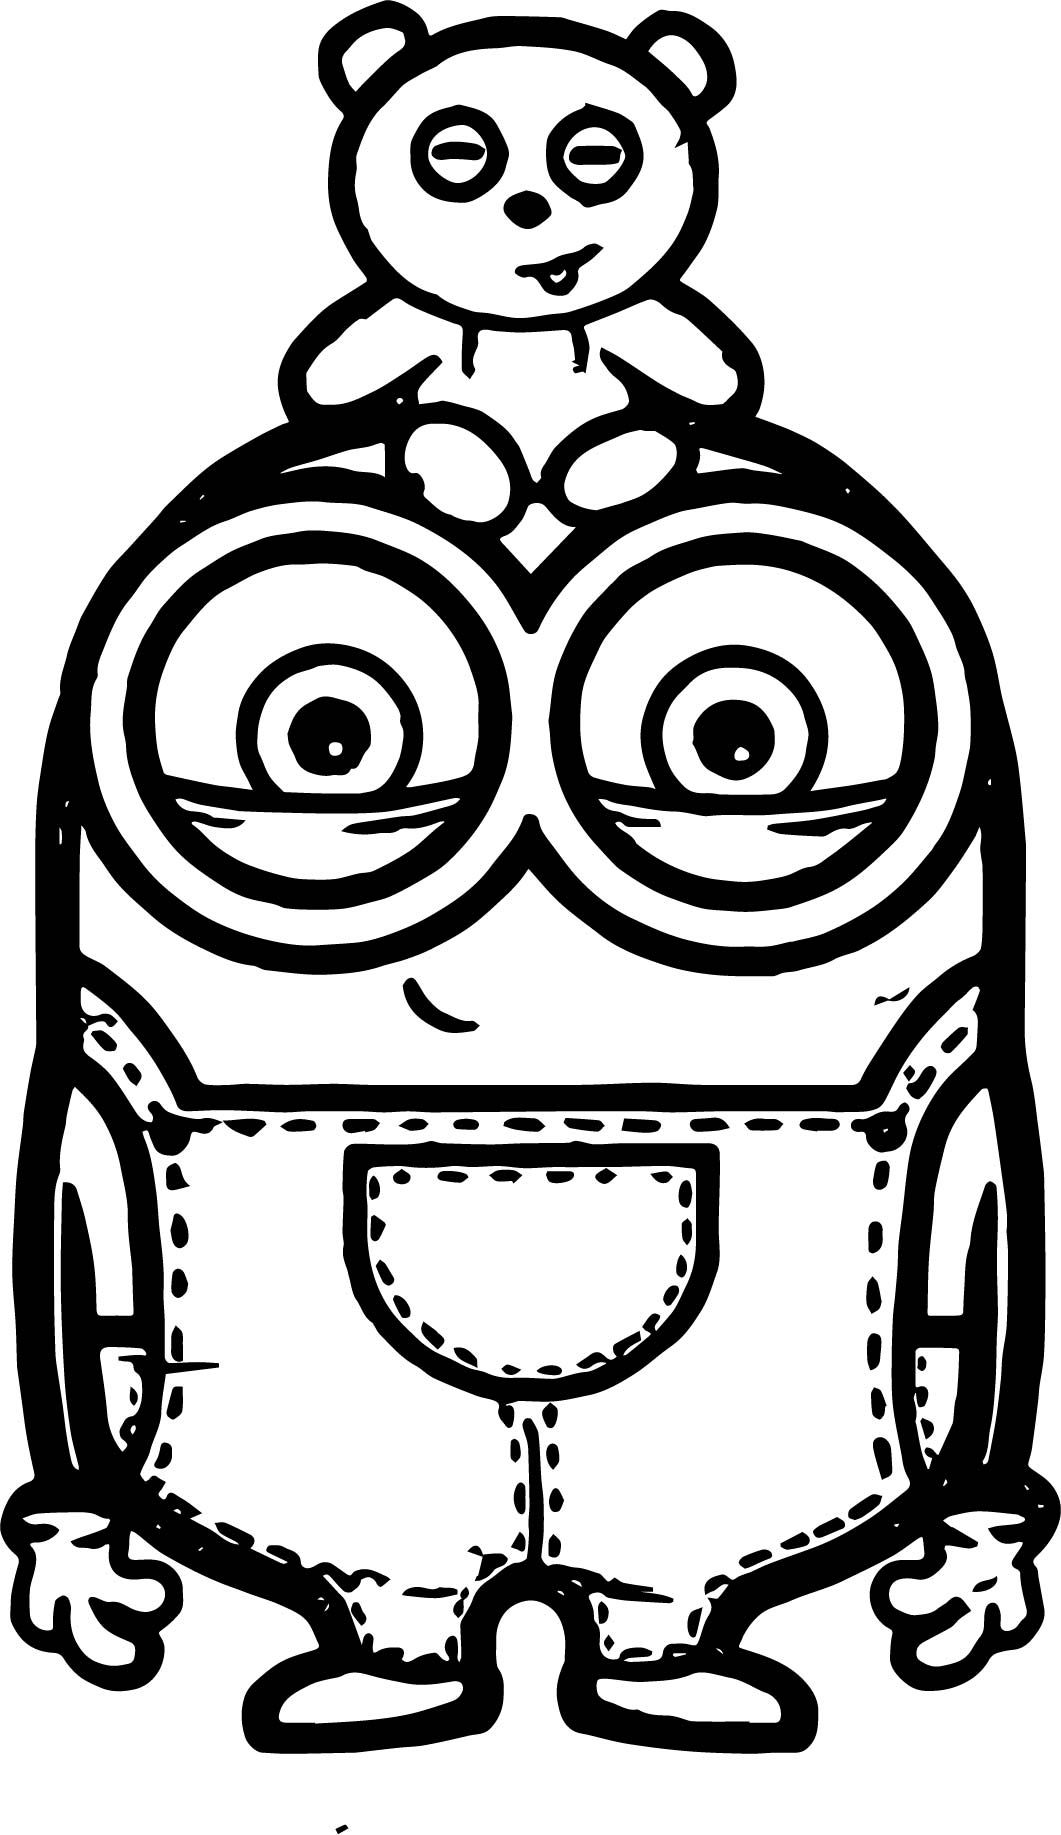 Awesome Minion Bob And Bear Toy Coloring Page With Images